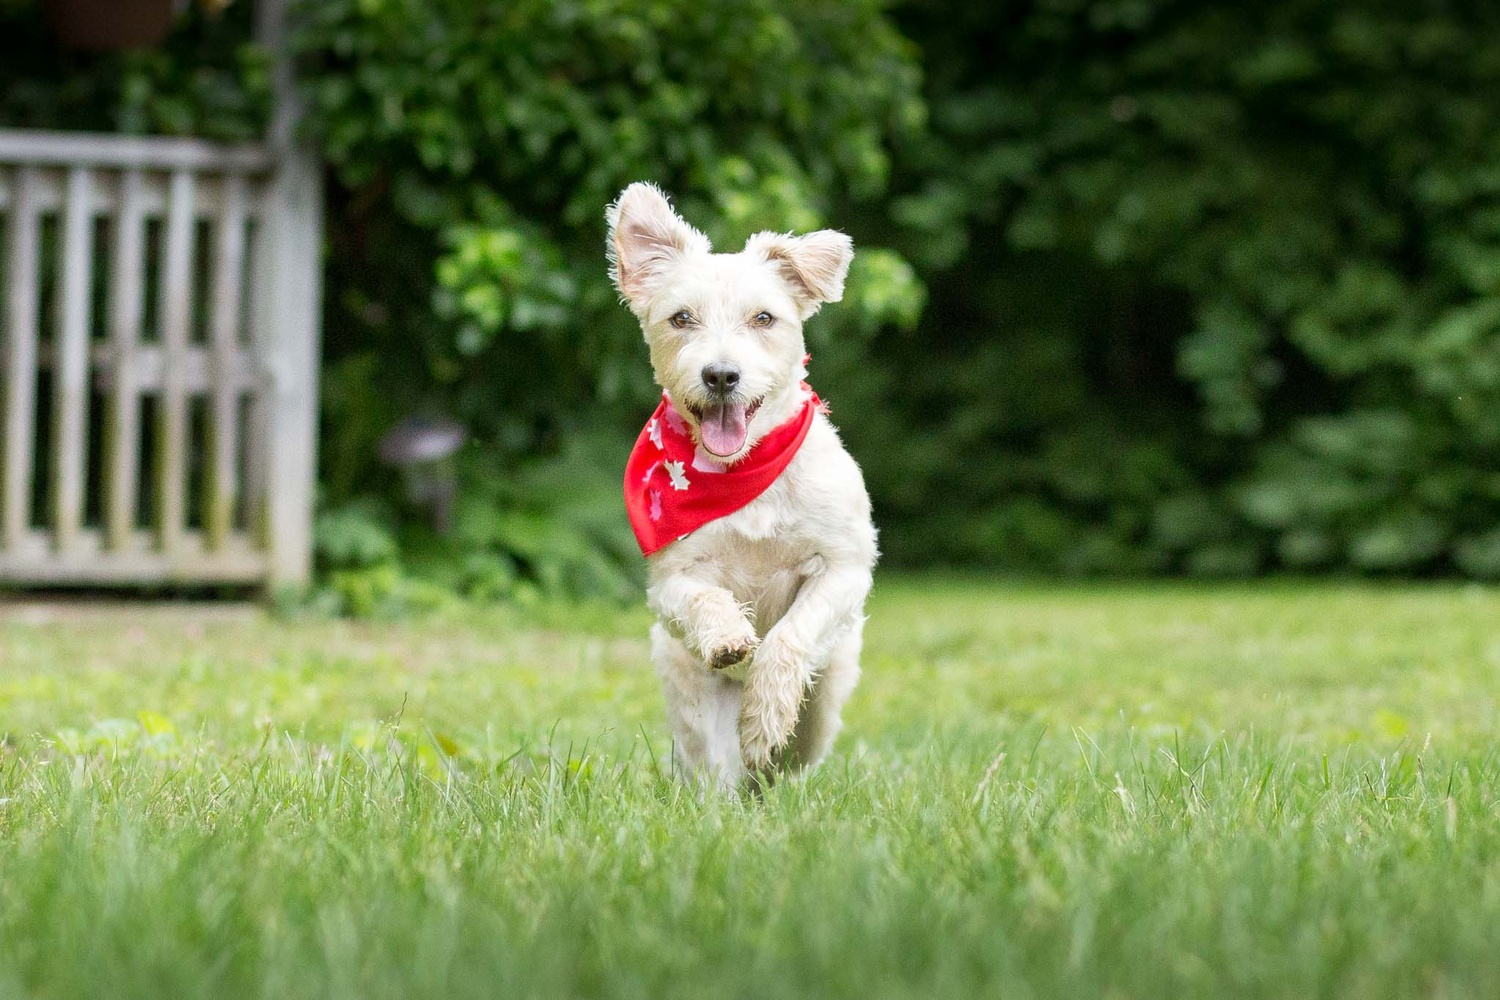 Burst Mode Photos (Dog Portraits from Photos)